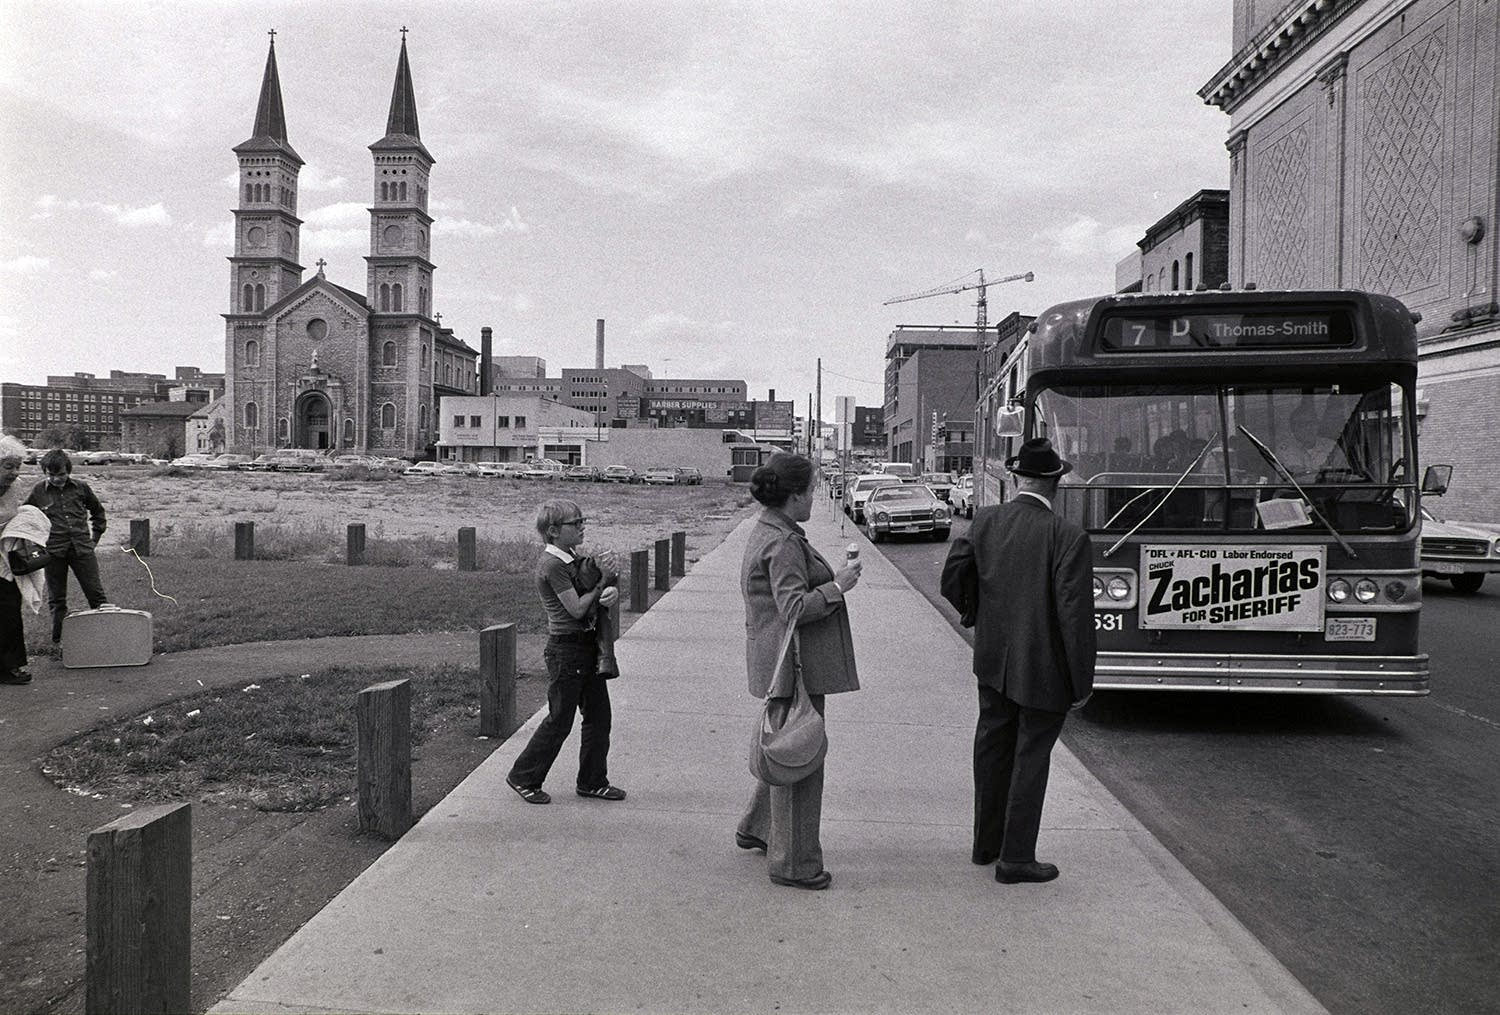 Bus riders wait to board an MTC bus on St. Peter St., behind the Palace.